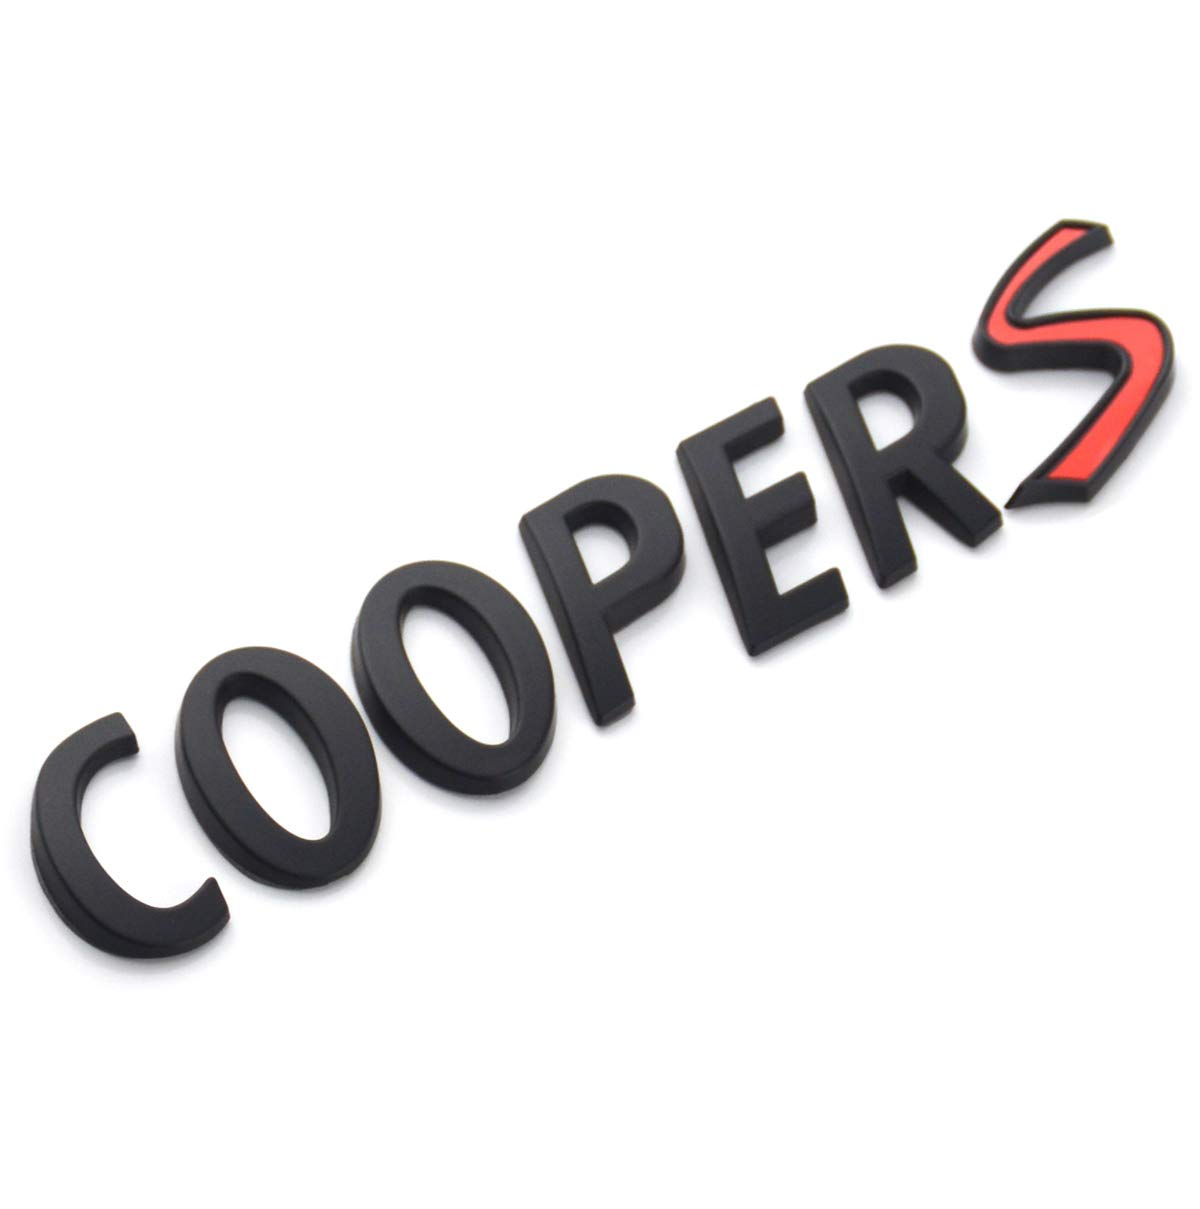 EmbRoom Cooper S Letter Emblem Black//Red 3D Badge Lettering Decal Sticker Replacement for Mini Cooper Rear Trunk Lid Hatch Tailgate